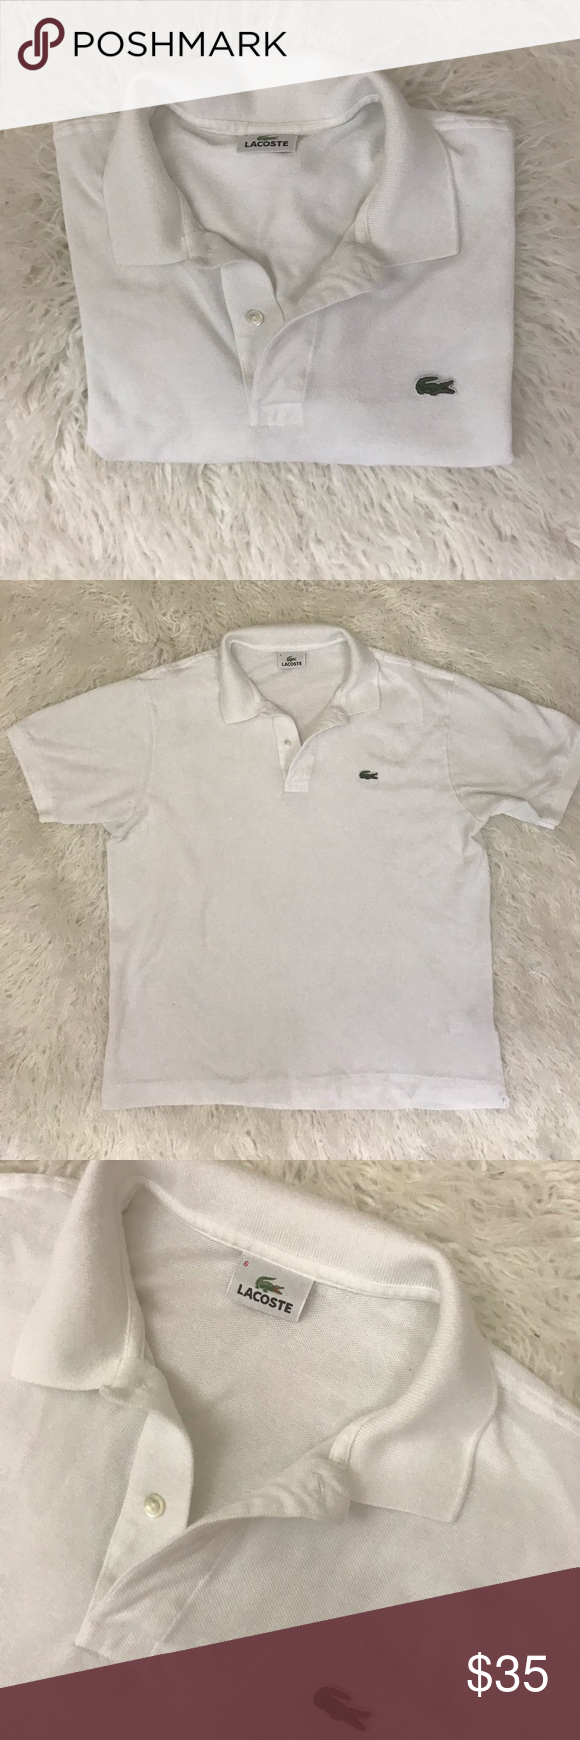 Lacoste White Polo Shirt Mens Size 6 In 2018 My Posh Picks